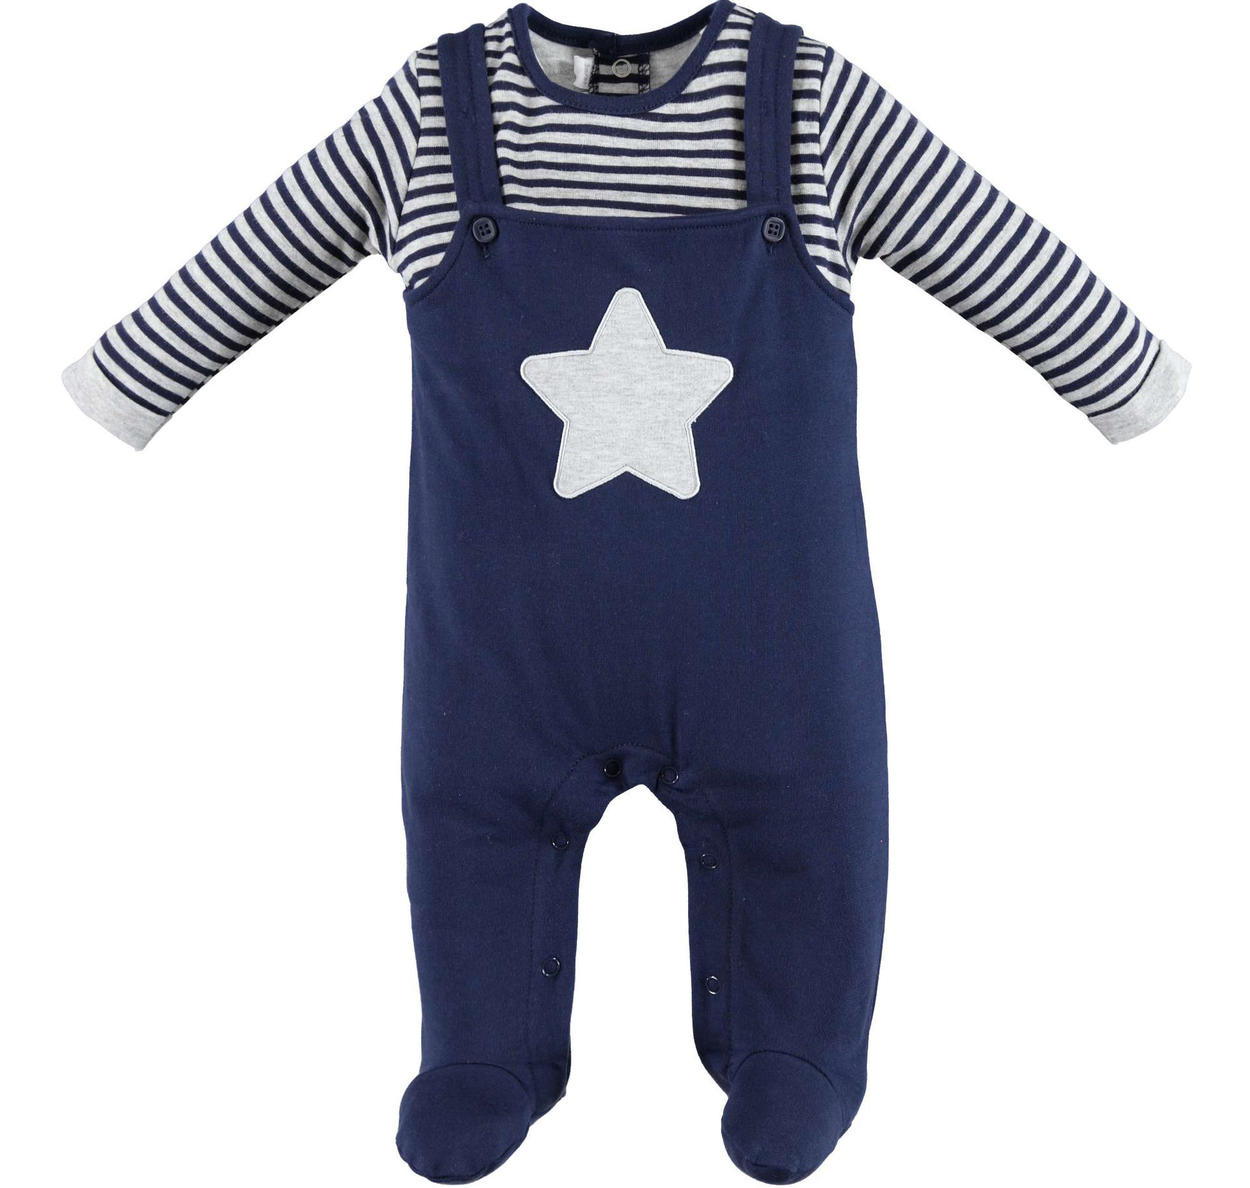 59916ffb7 Minibanda fleece romper with faux dungarees for babies from 0 to 24 ...